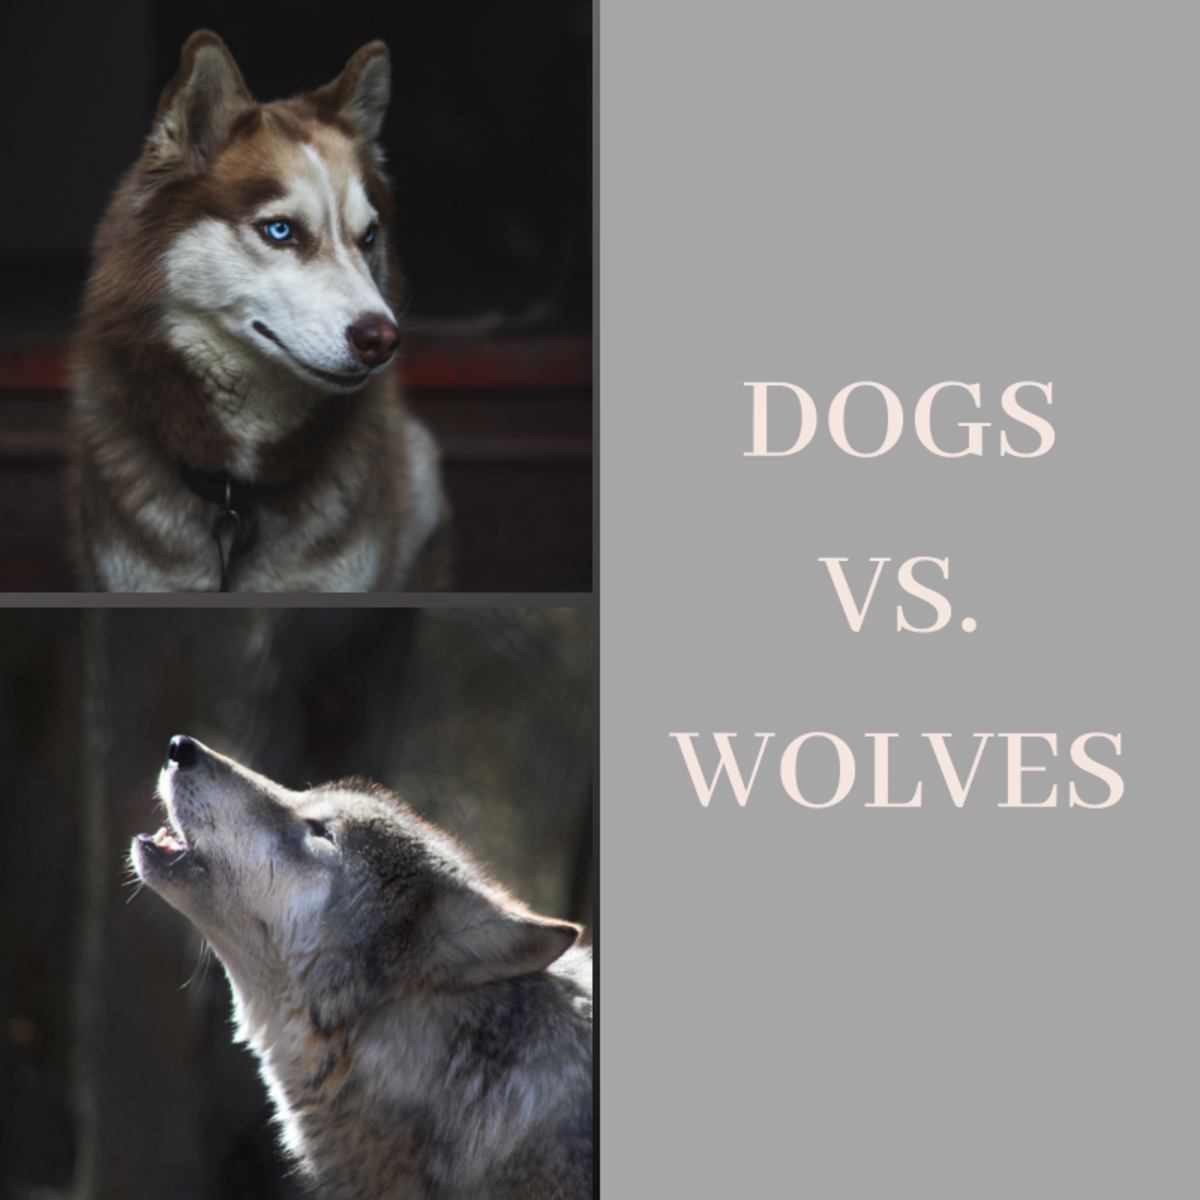 The Differences Between Dogs and Wolves